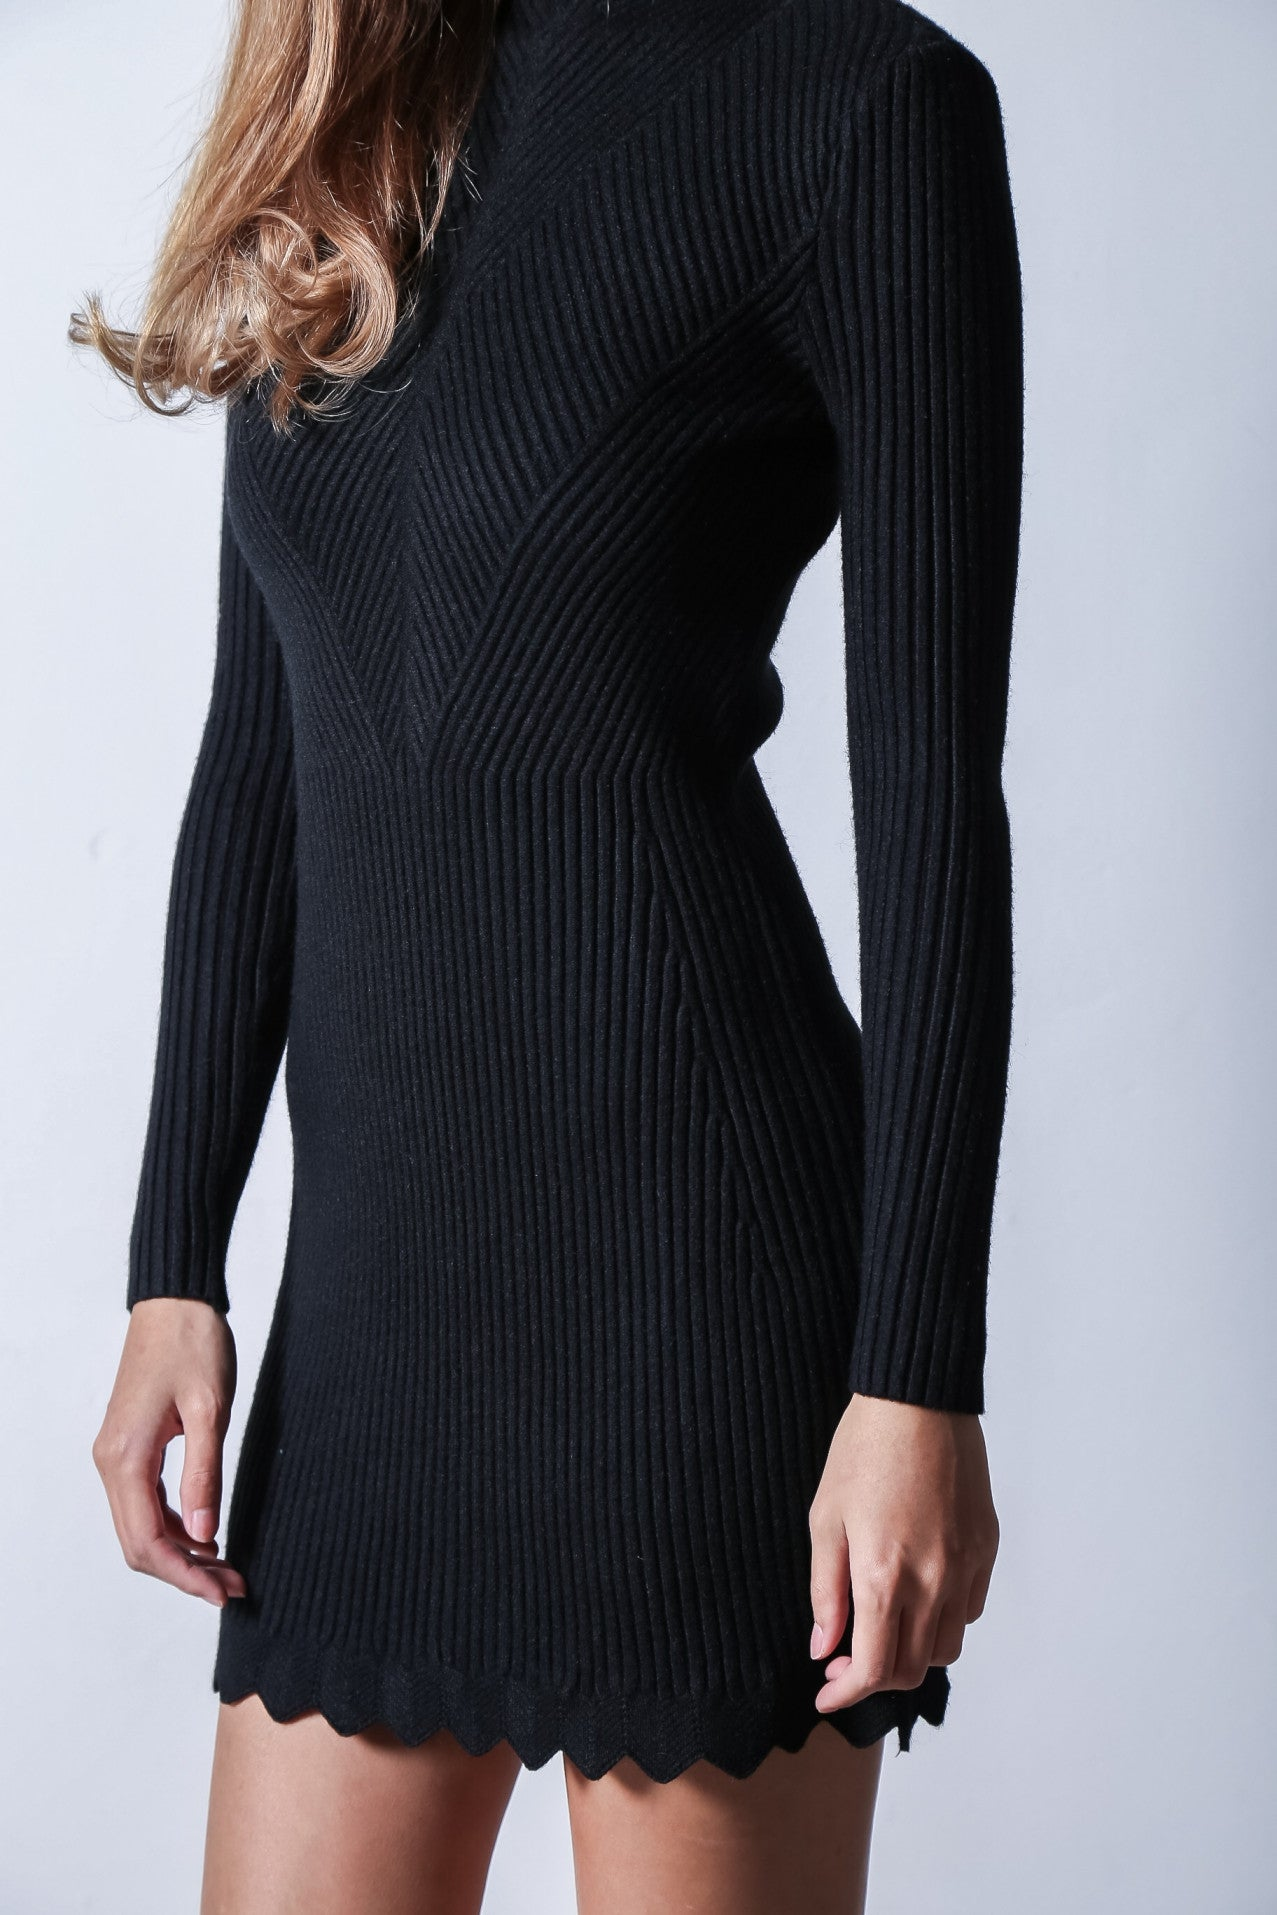 KALE SCALLOP KNIT DRESS IN BLACK - TOPAZETTE